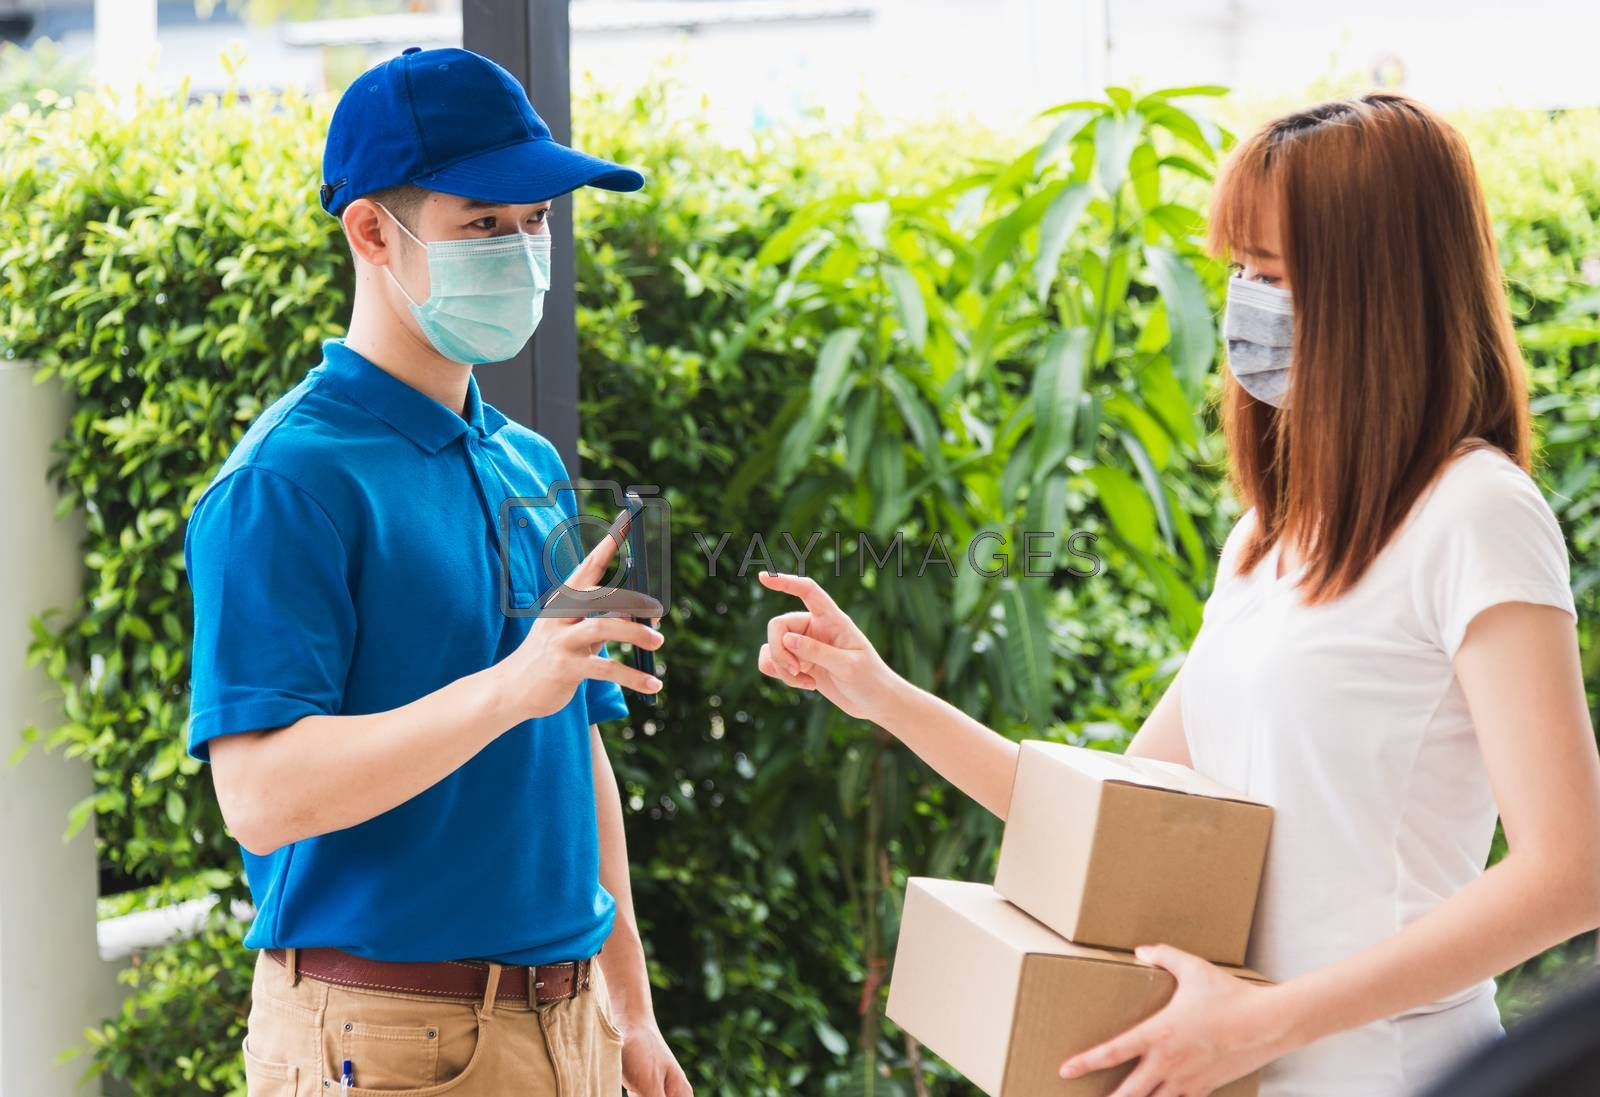 Asian delivery express courier young man giving parcel boxes to woman customer signature for receiving on mobile phone both protective face mask, under curfew quarantine pandemic coronavirus COVID-19